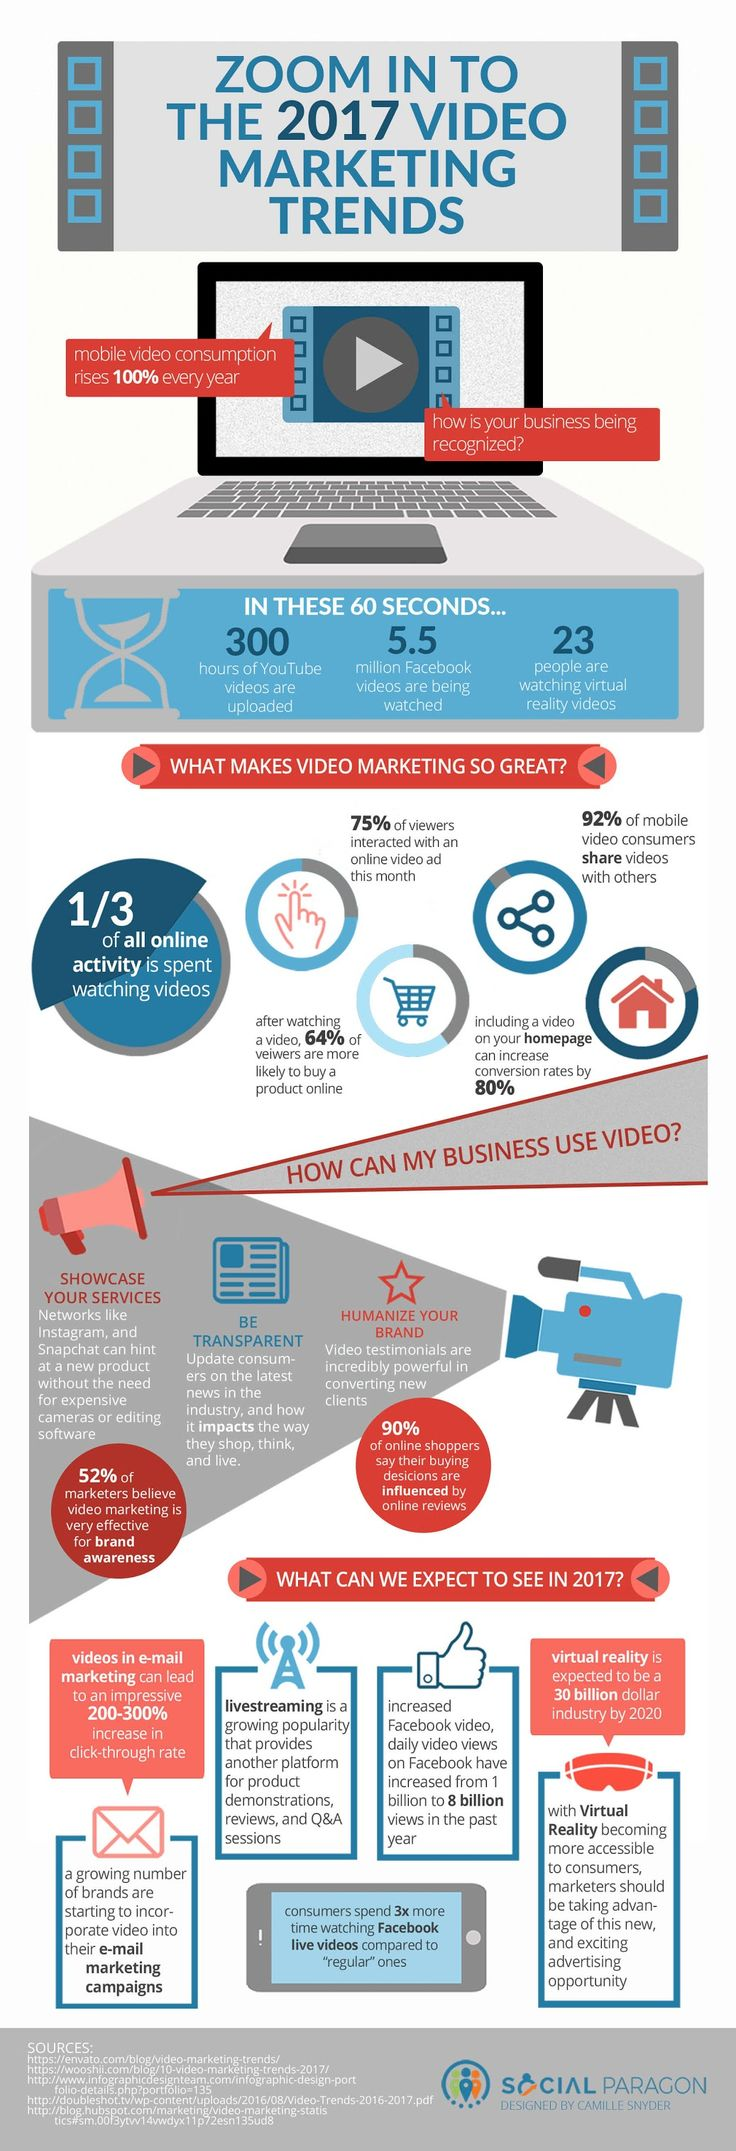 Zoom in to the 2017 Video Marketing Trends [Infographic]